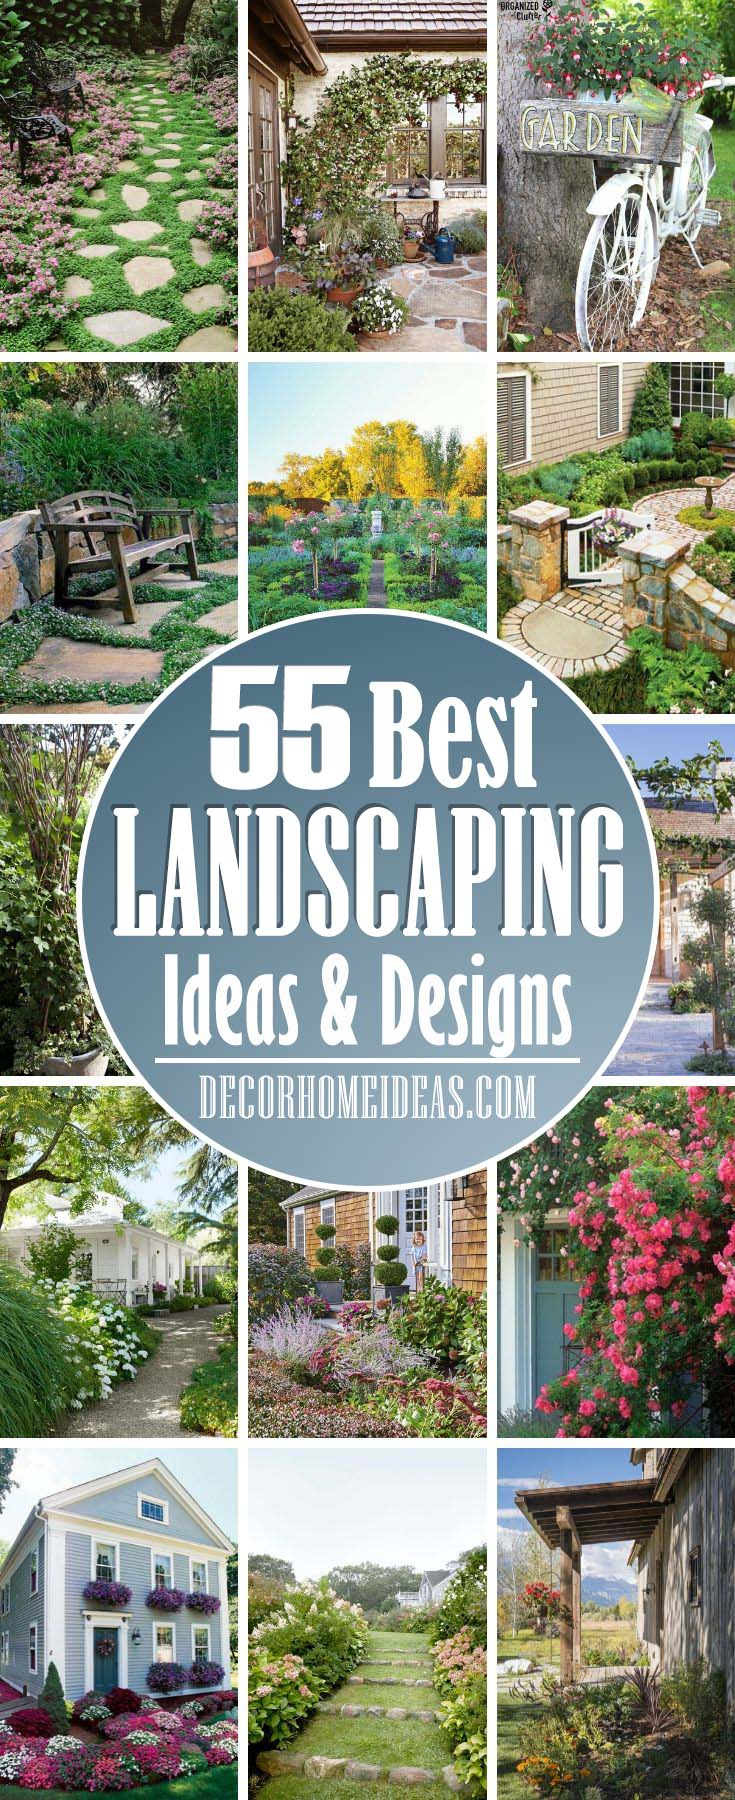 Fresh Front Yard And Backyard Landscaping Ideas. Get some cool ideas to spruce up your garden - arbors, trellis, bench, pathways, pergolas and many more. #garden #backyard #frontyard #diy #decorhomeideas